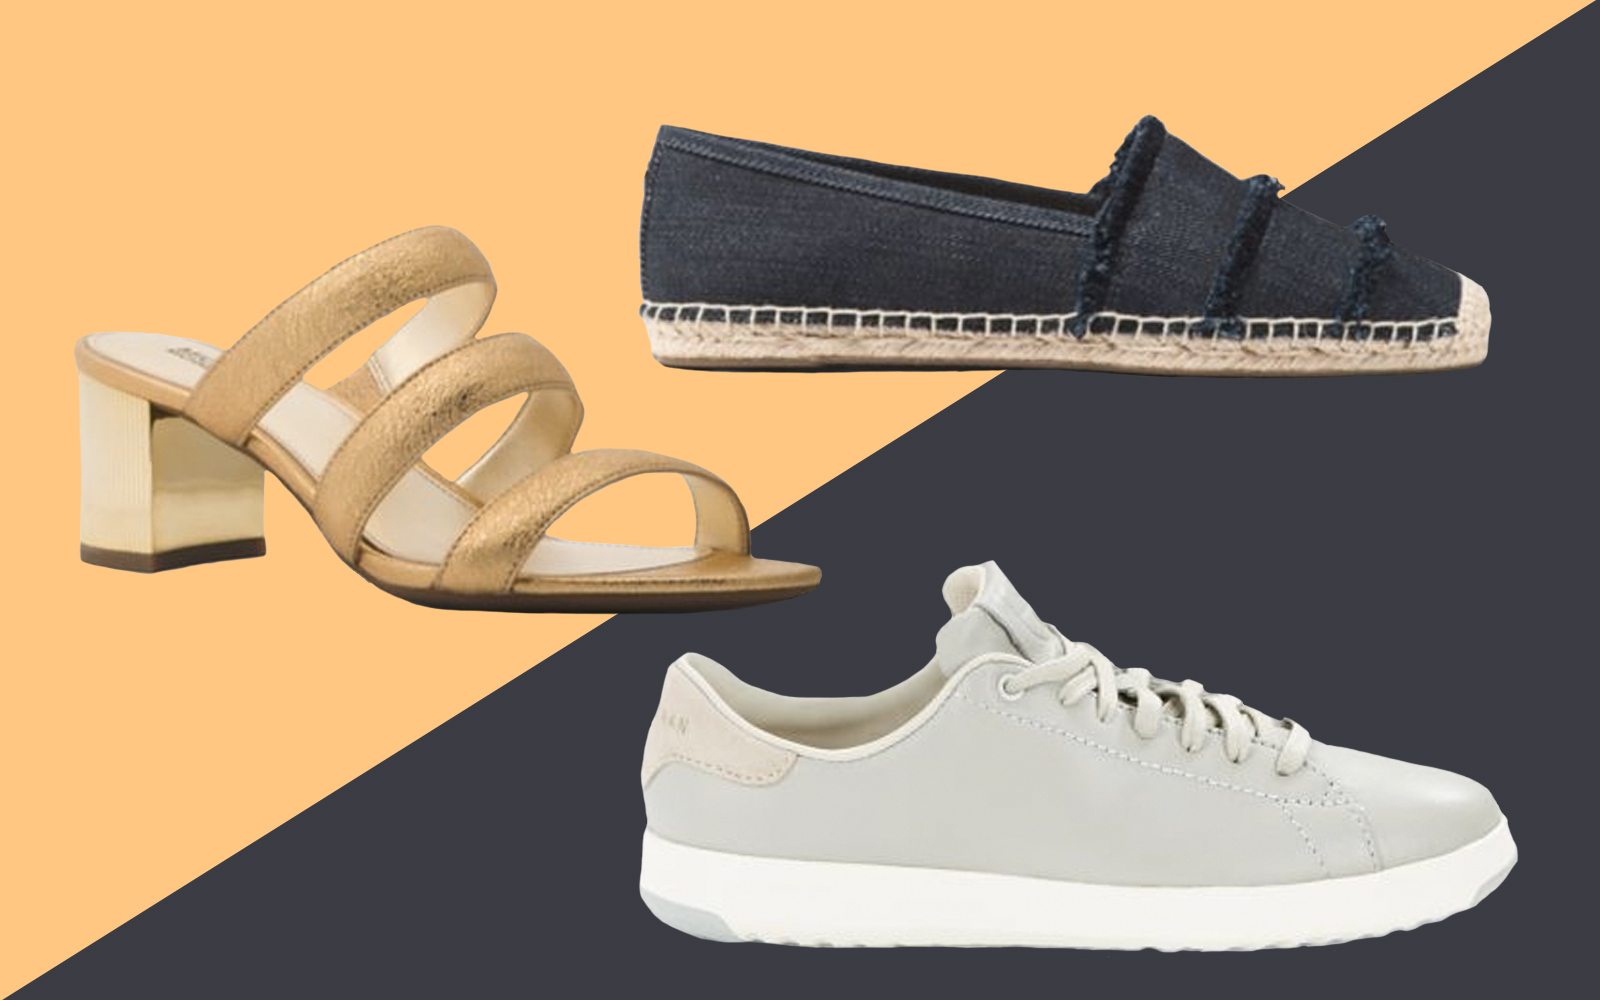 Lord & Taylor's Biggest Sale of the Season Has So Many Vacation-worthy Shoes